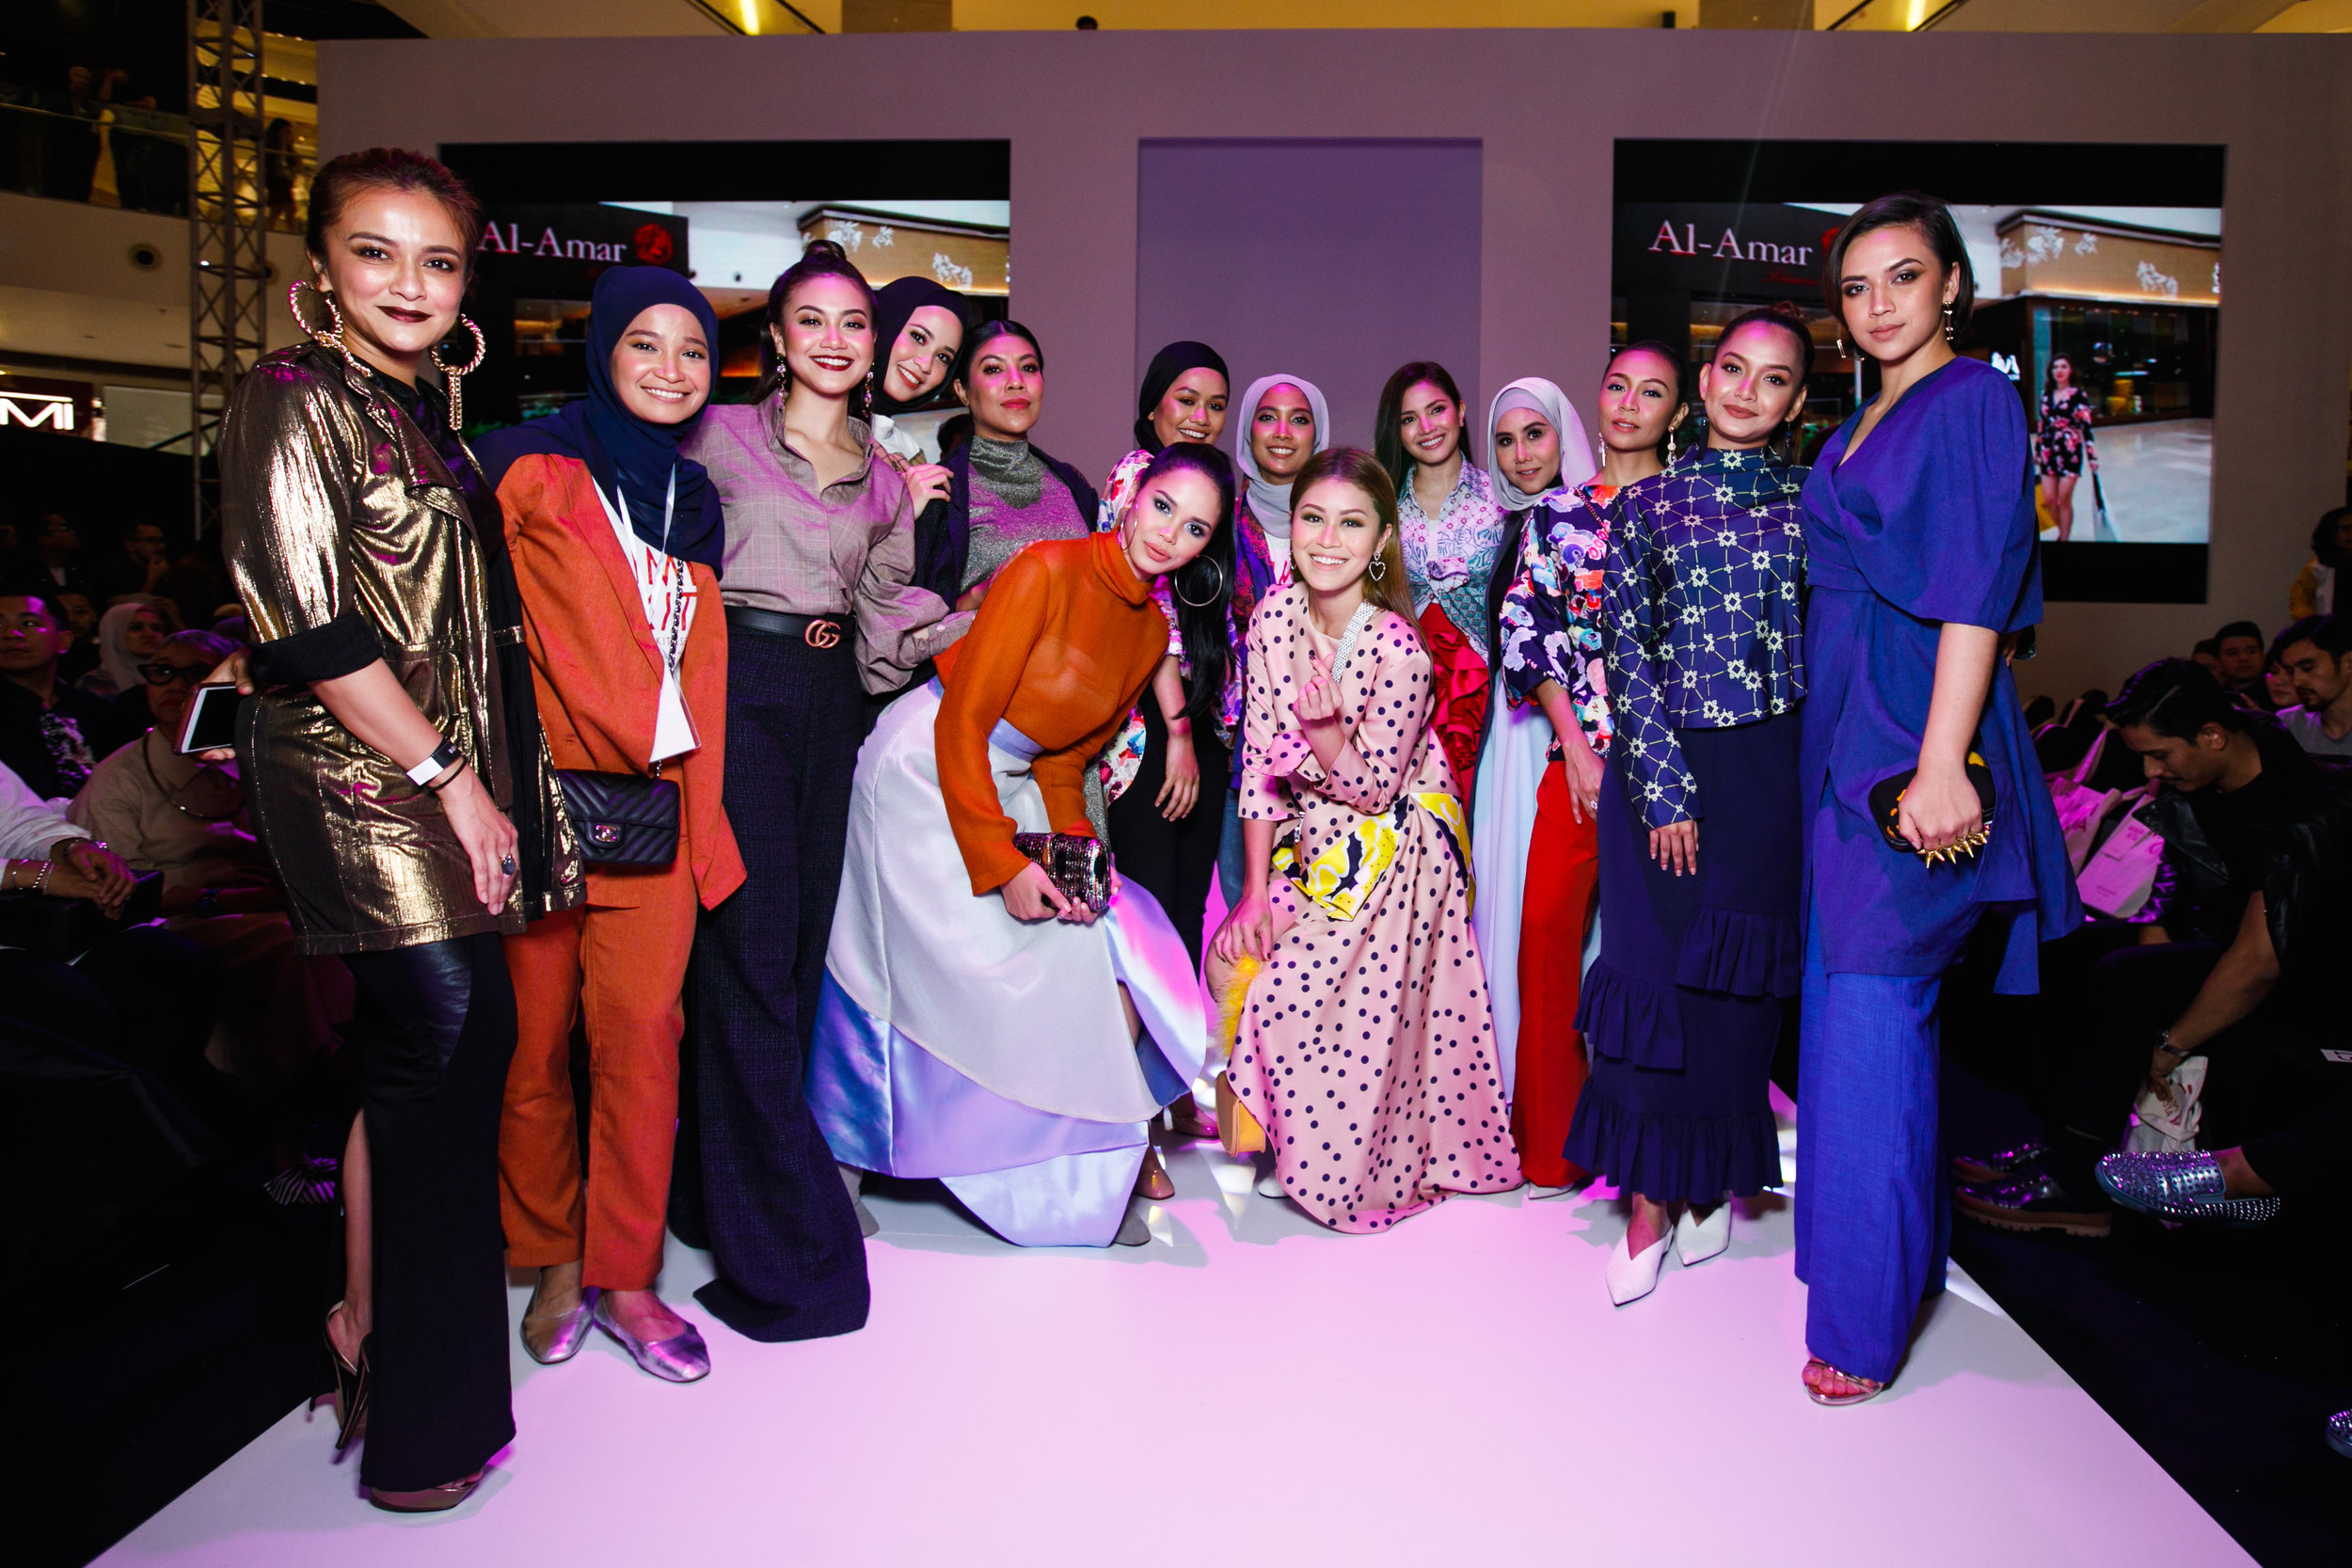 KLFW2018 - Day 1 - 0_042265 - Photo By All Is Amazing.JPG